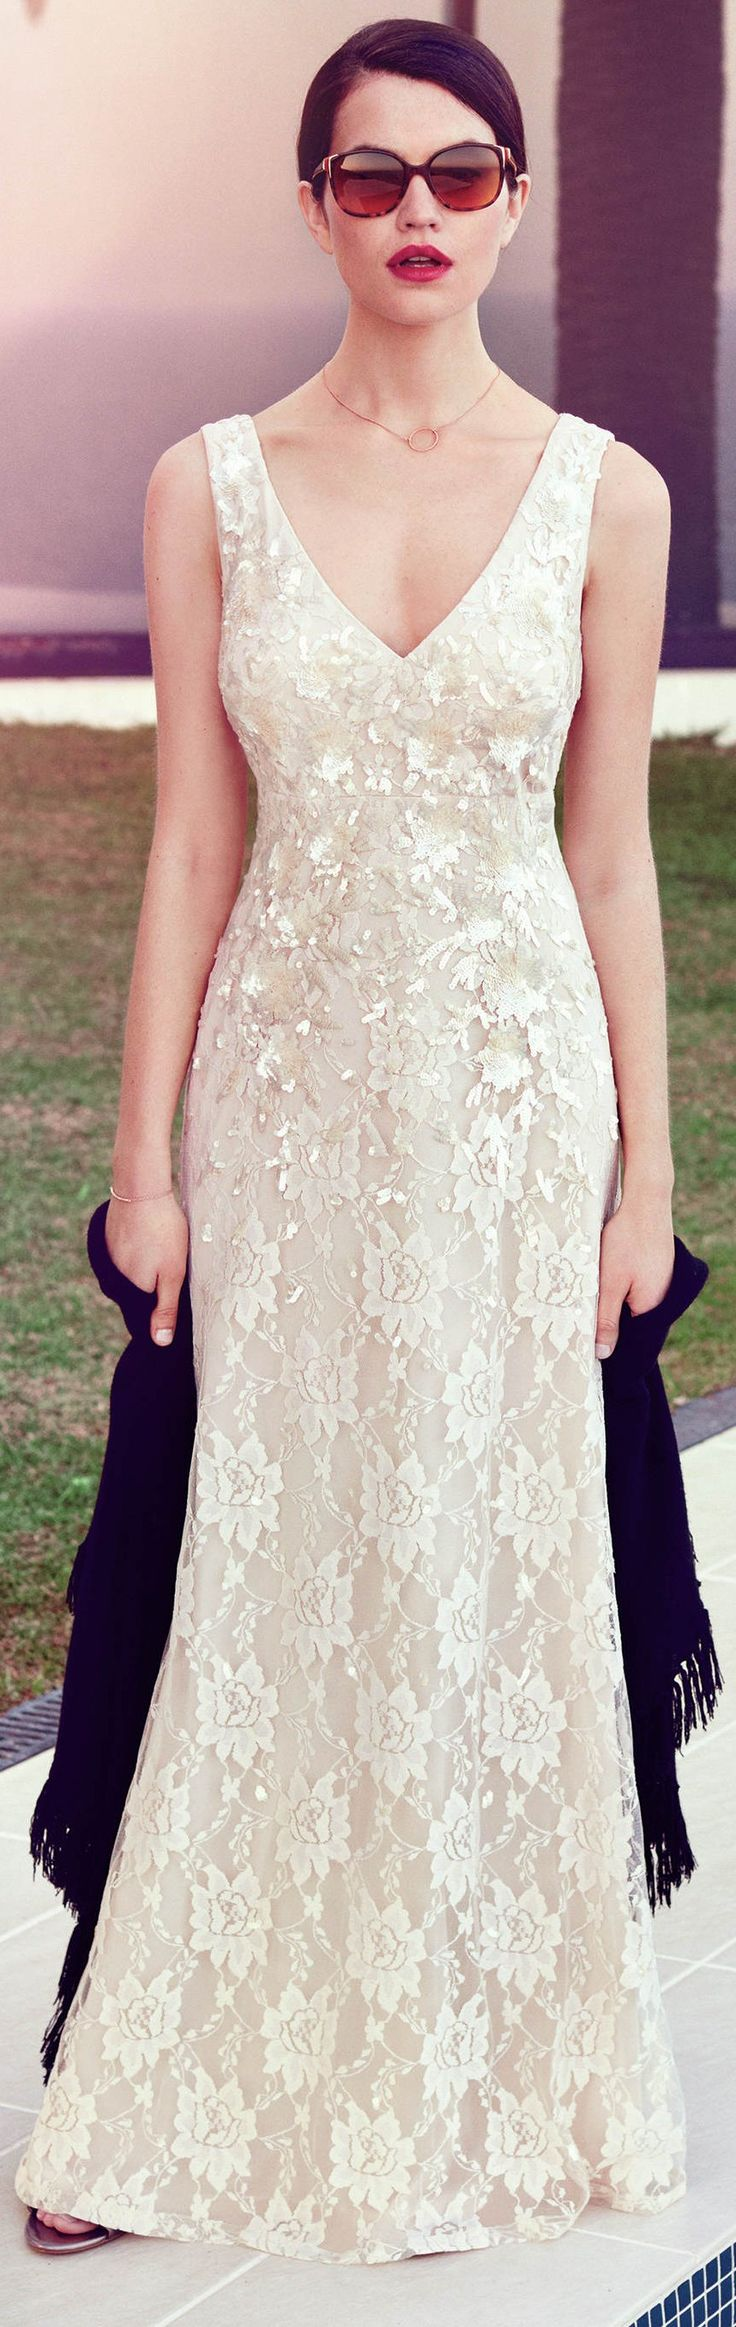 Informal Wedding Dresses For Older Brides: 25+ Best Ideas About Mature Bride Dresses On Pinterest